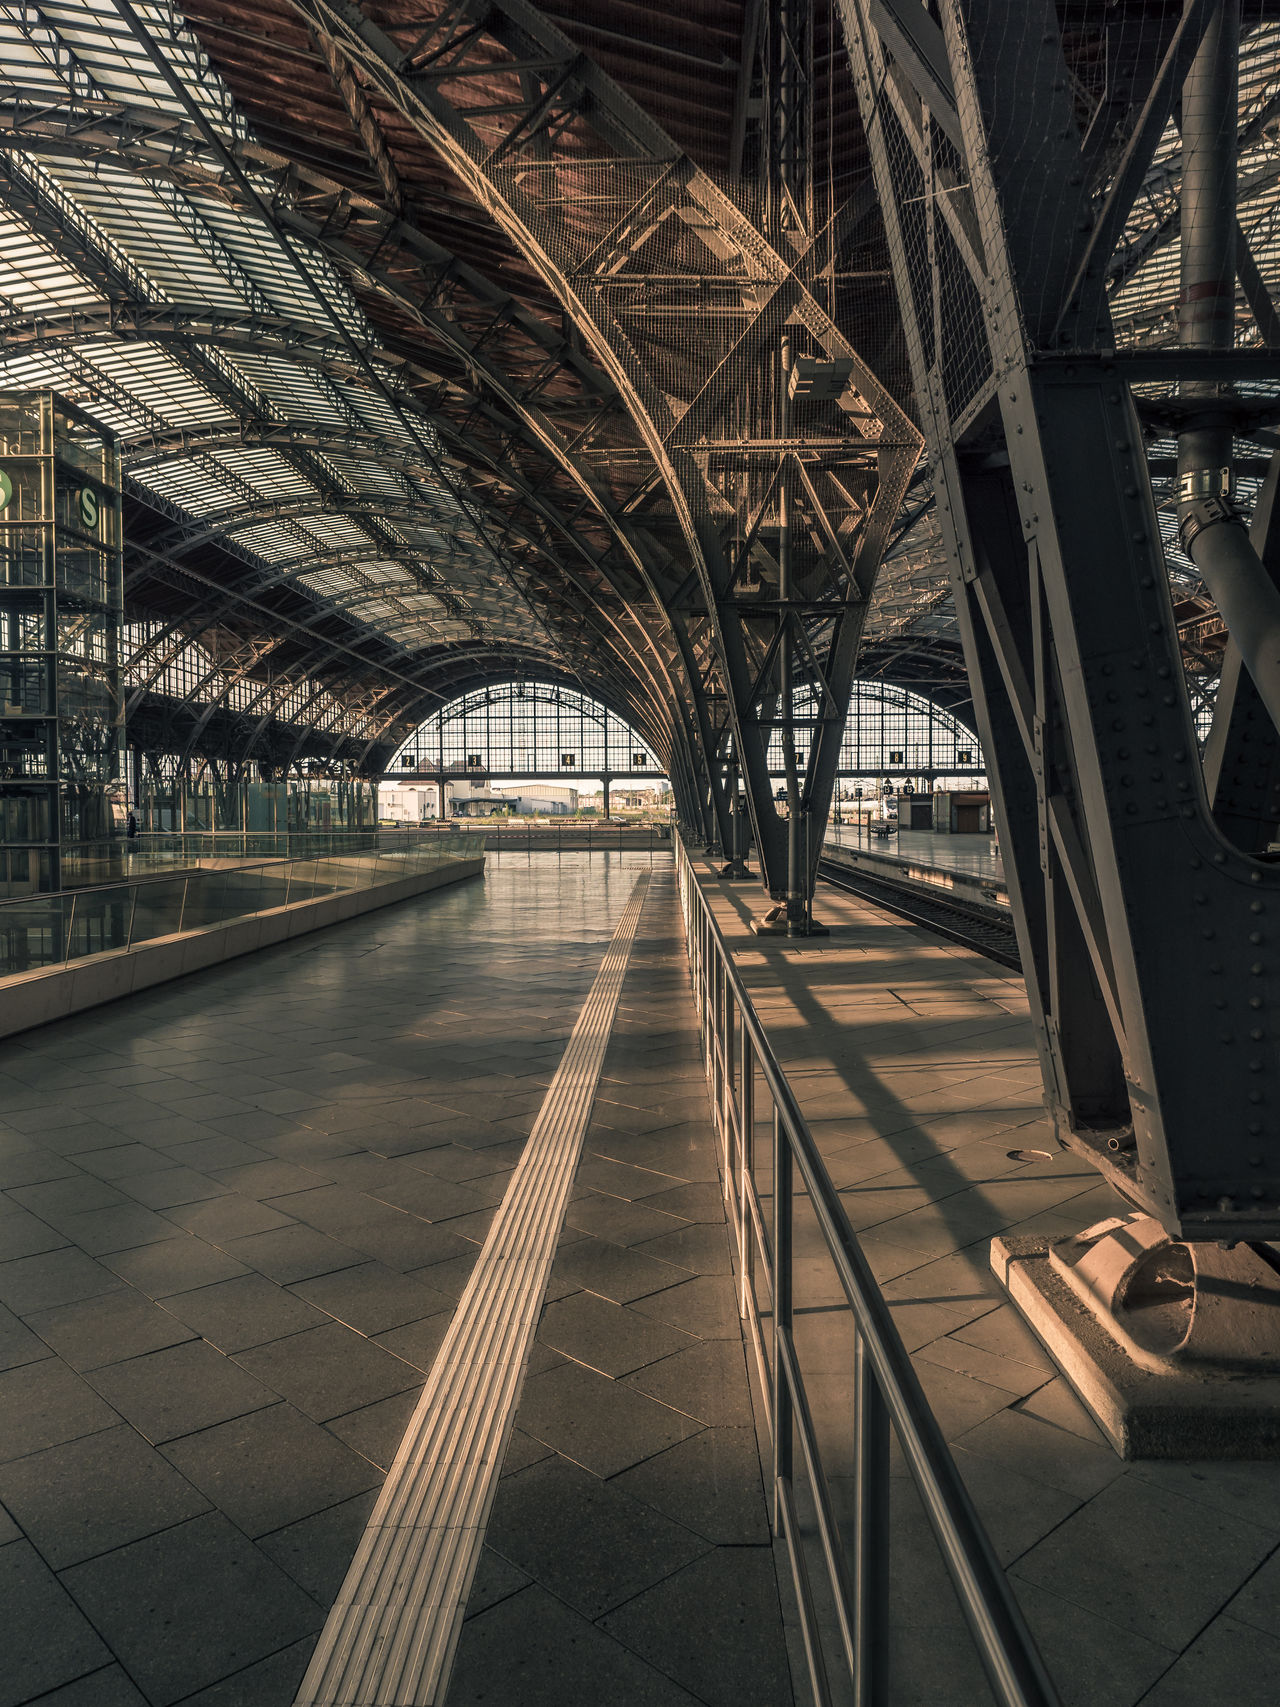 View into the great station at golden hour :-) Cityscape GERMANY🇩🇪DEUTSCHERLAND@ Golden Hour Hauptbahnhof Leipzig Stationary Steel Steel Structure  Sunlight And Shadow Sunlight, Shades And Shadows First Eyeem Photo